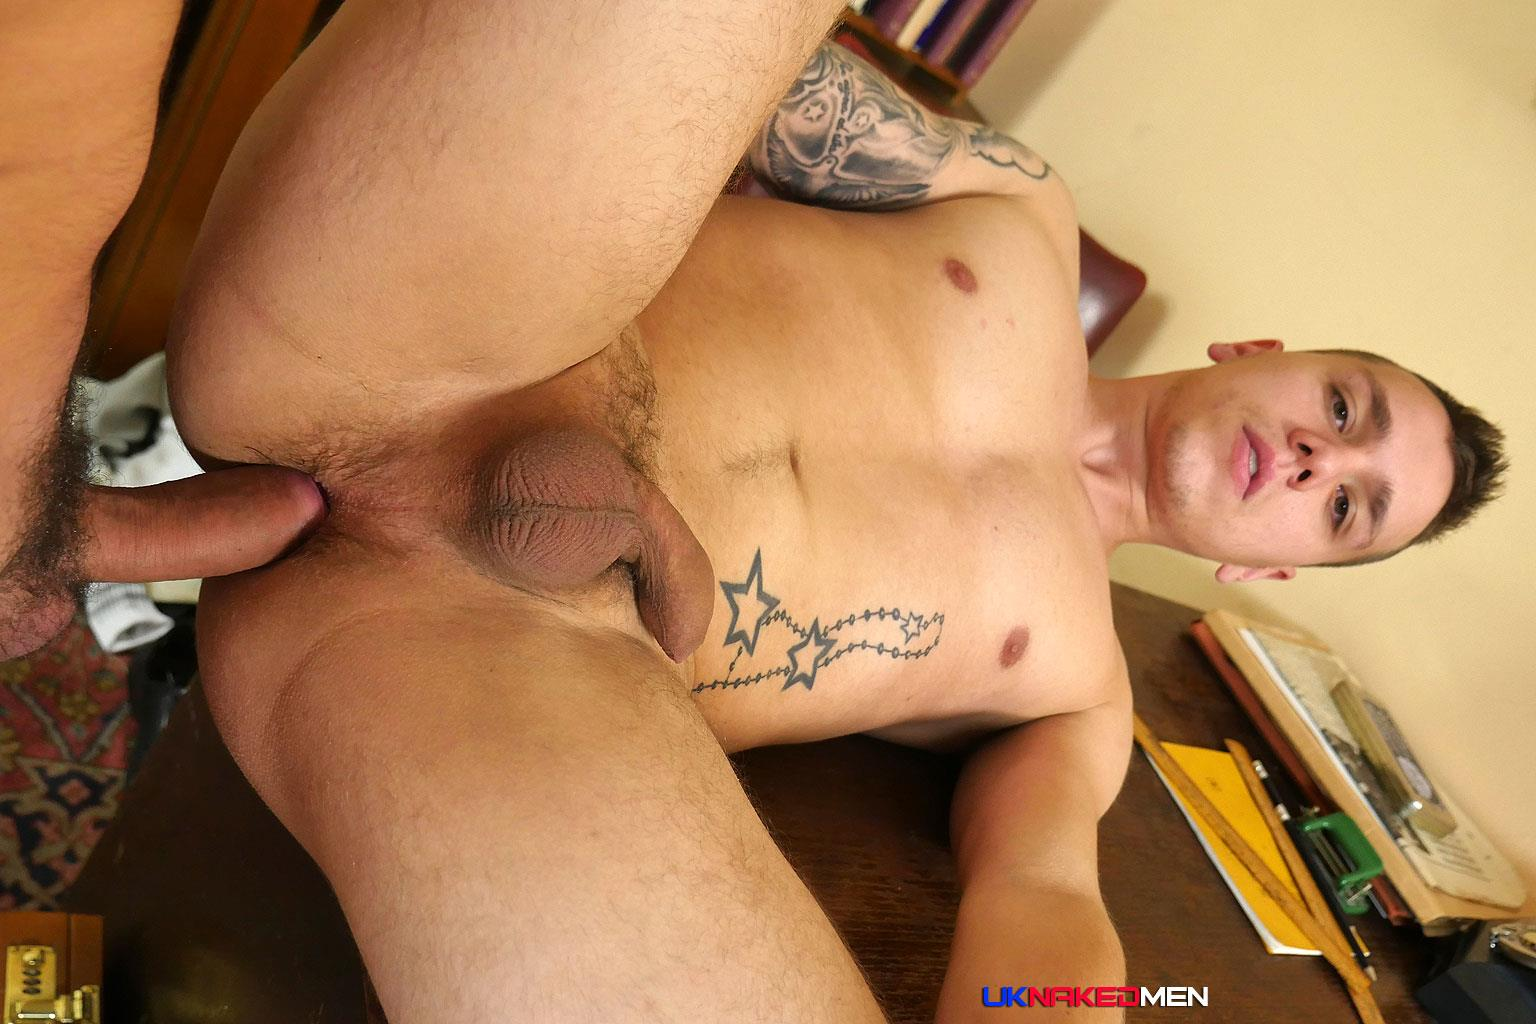 UK-Naked-Men-Rado-Zusila-and-Mickey-Rush-Uncut-Cock-Bareback-Amateur-Gay-Porn-15 Younger British Guy Takes An Uncut Cock Up The Ass Bareback For The First Time